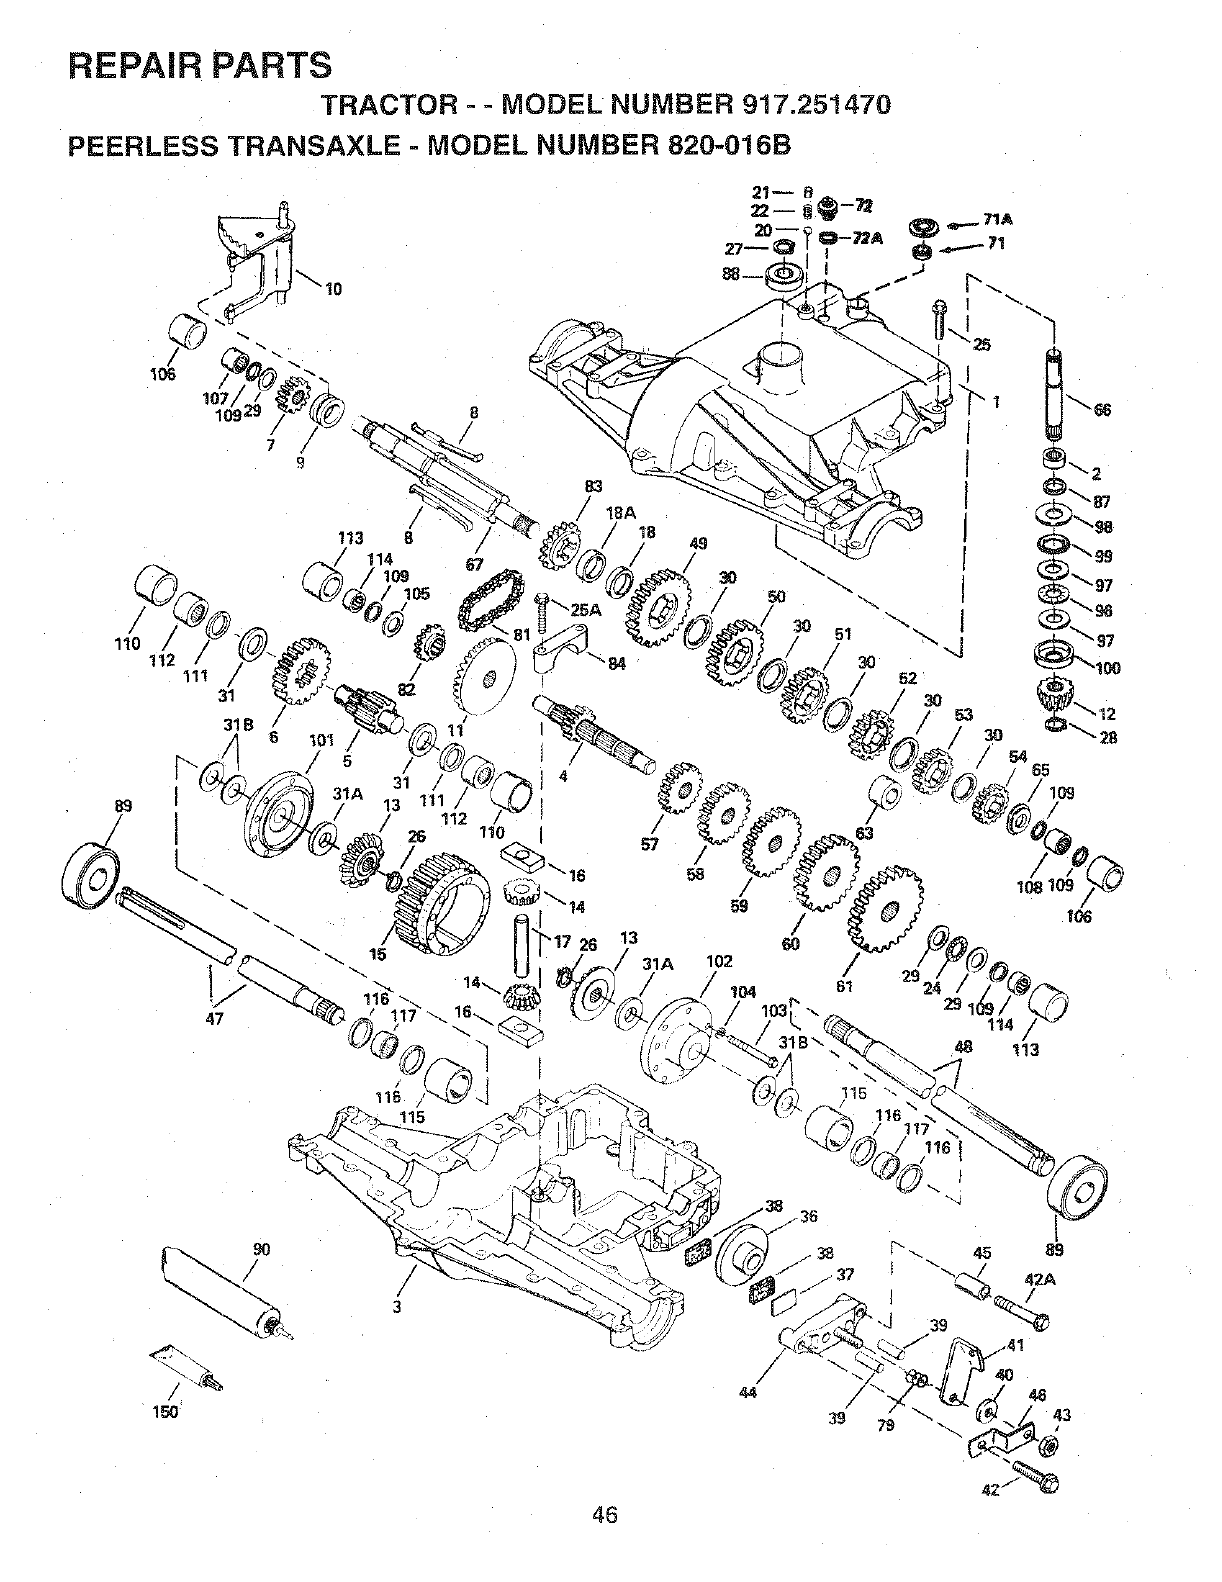 Page 46 of Sears Lawn Mower 917.25147 User Guide